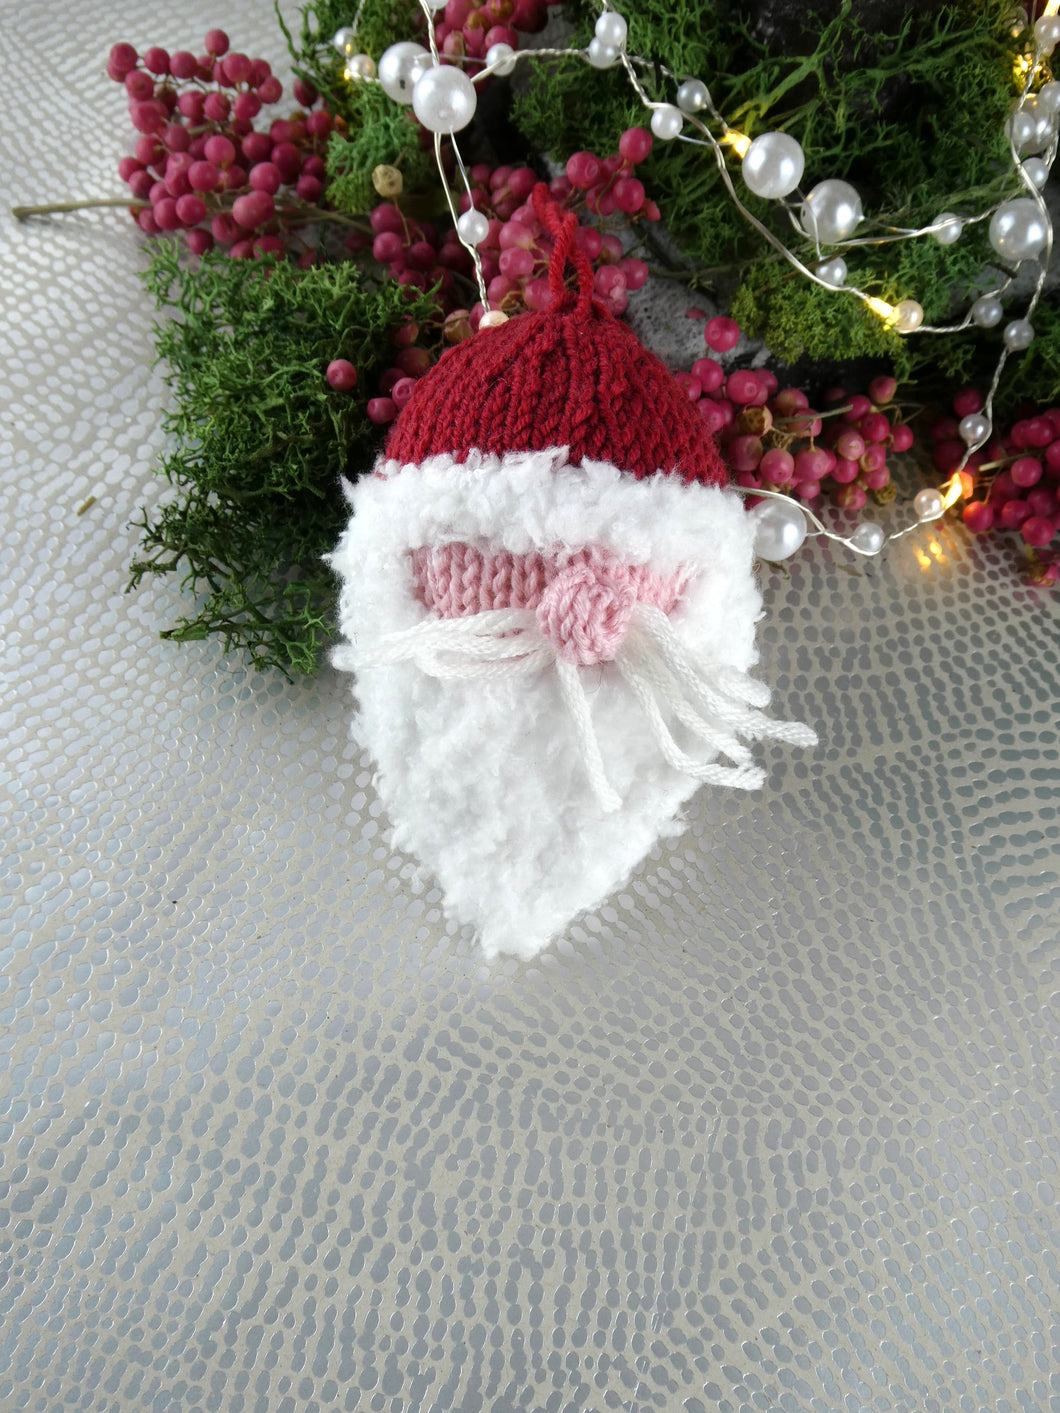 Cute knitted Christmas tree decoration